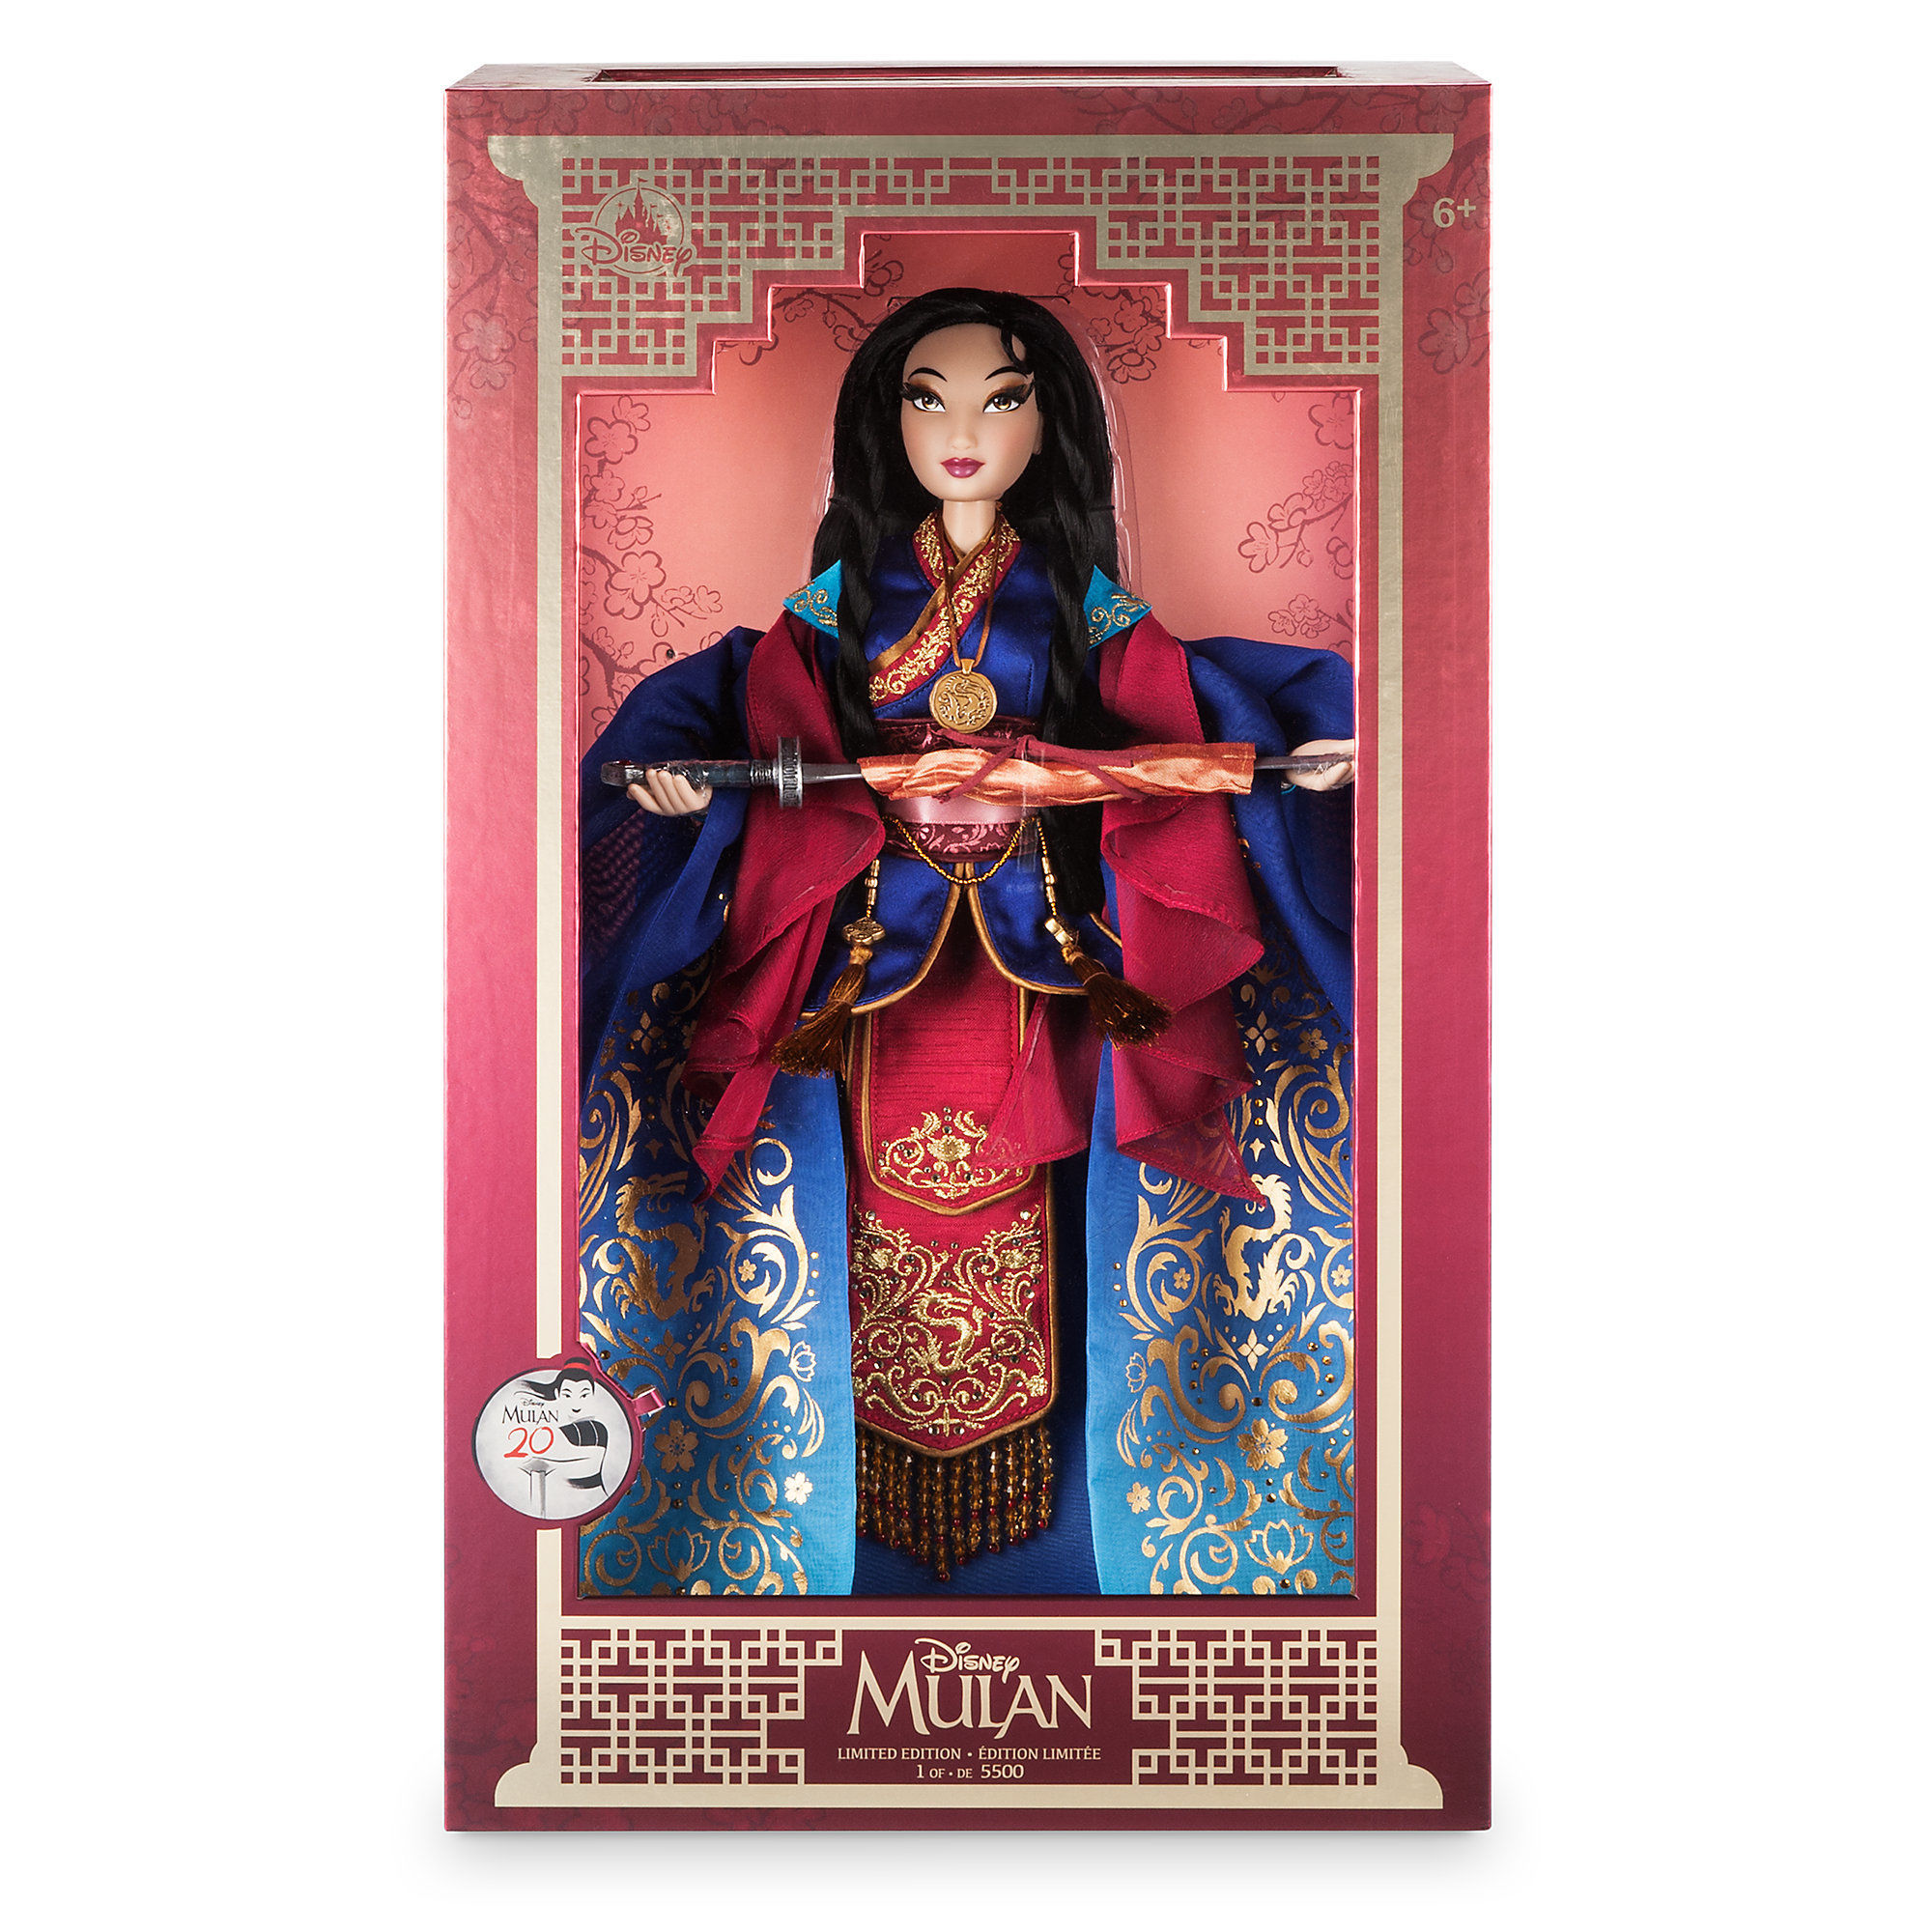 Disney Limited Edition Dolls Images 17 Inch Mulan Doll Hd Wallpaper And Background Photos